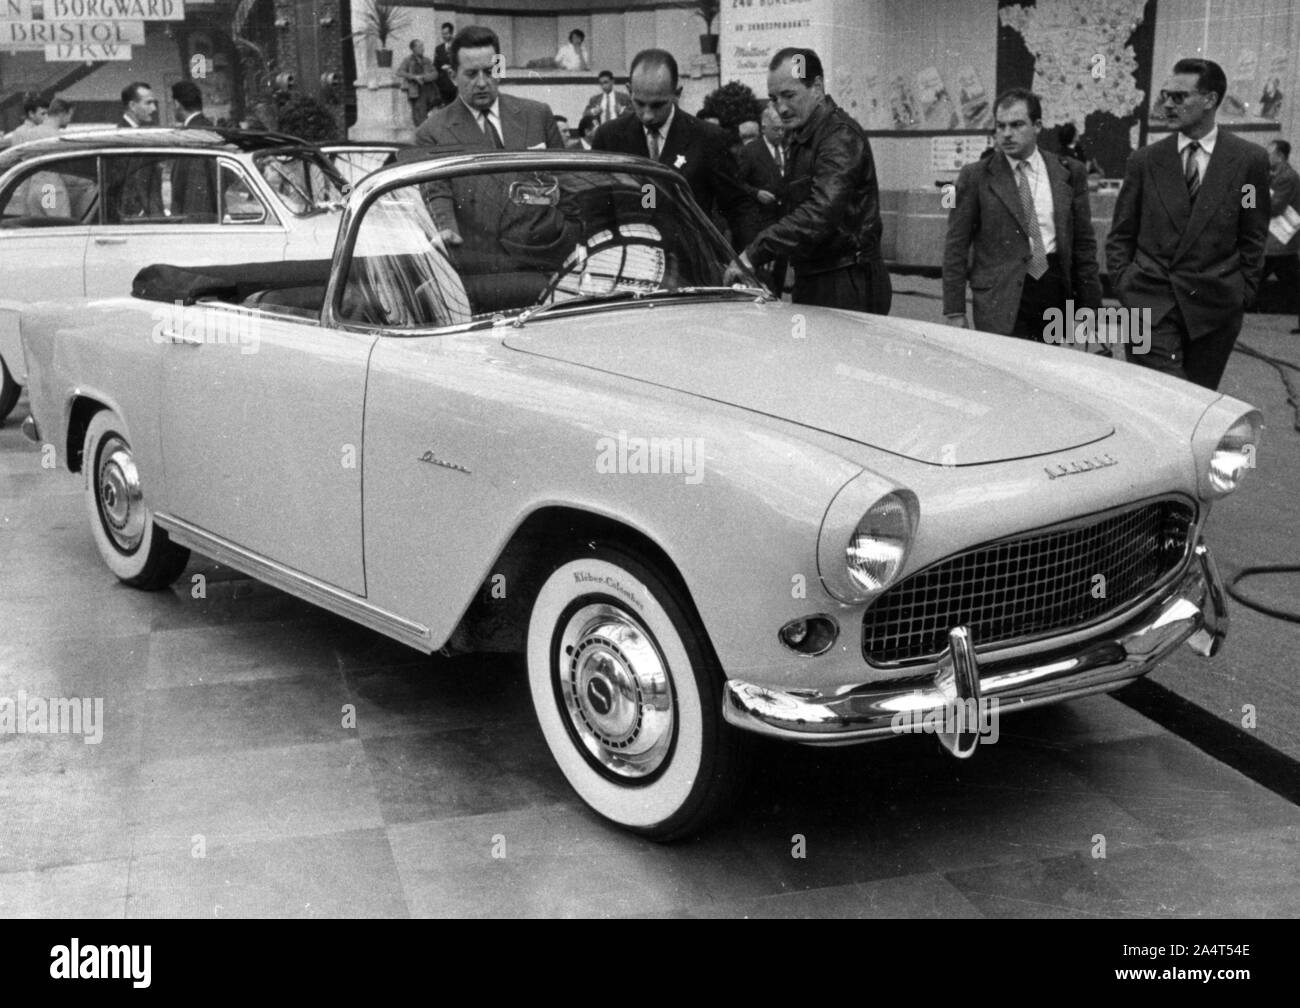 Audacieux Simca Aronde High Resolution Stock Photography and Images - Alamy GZ-68